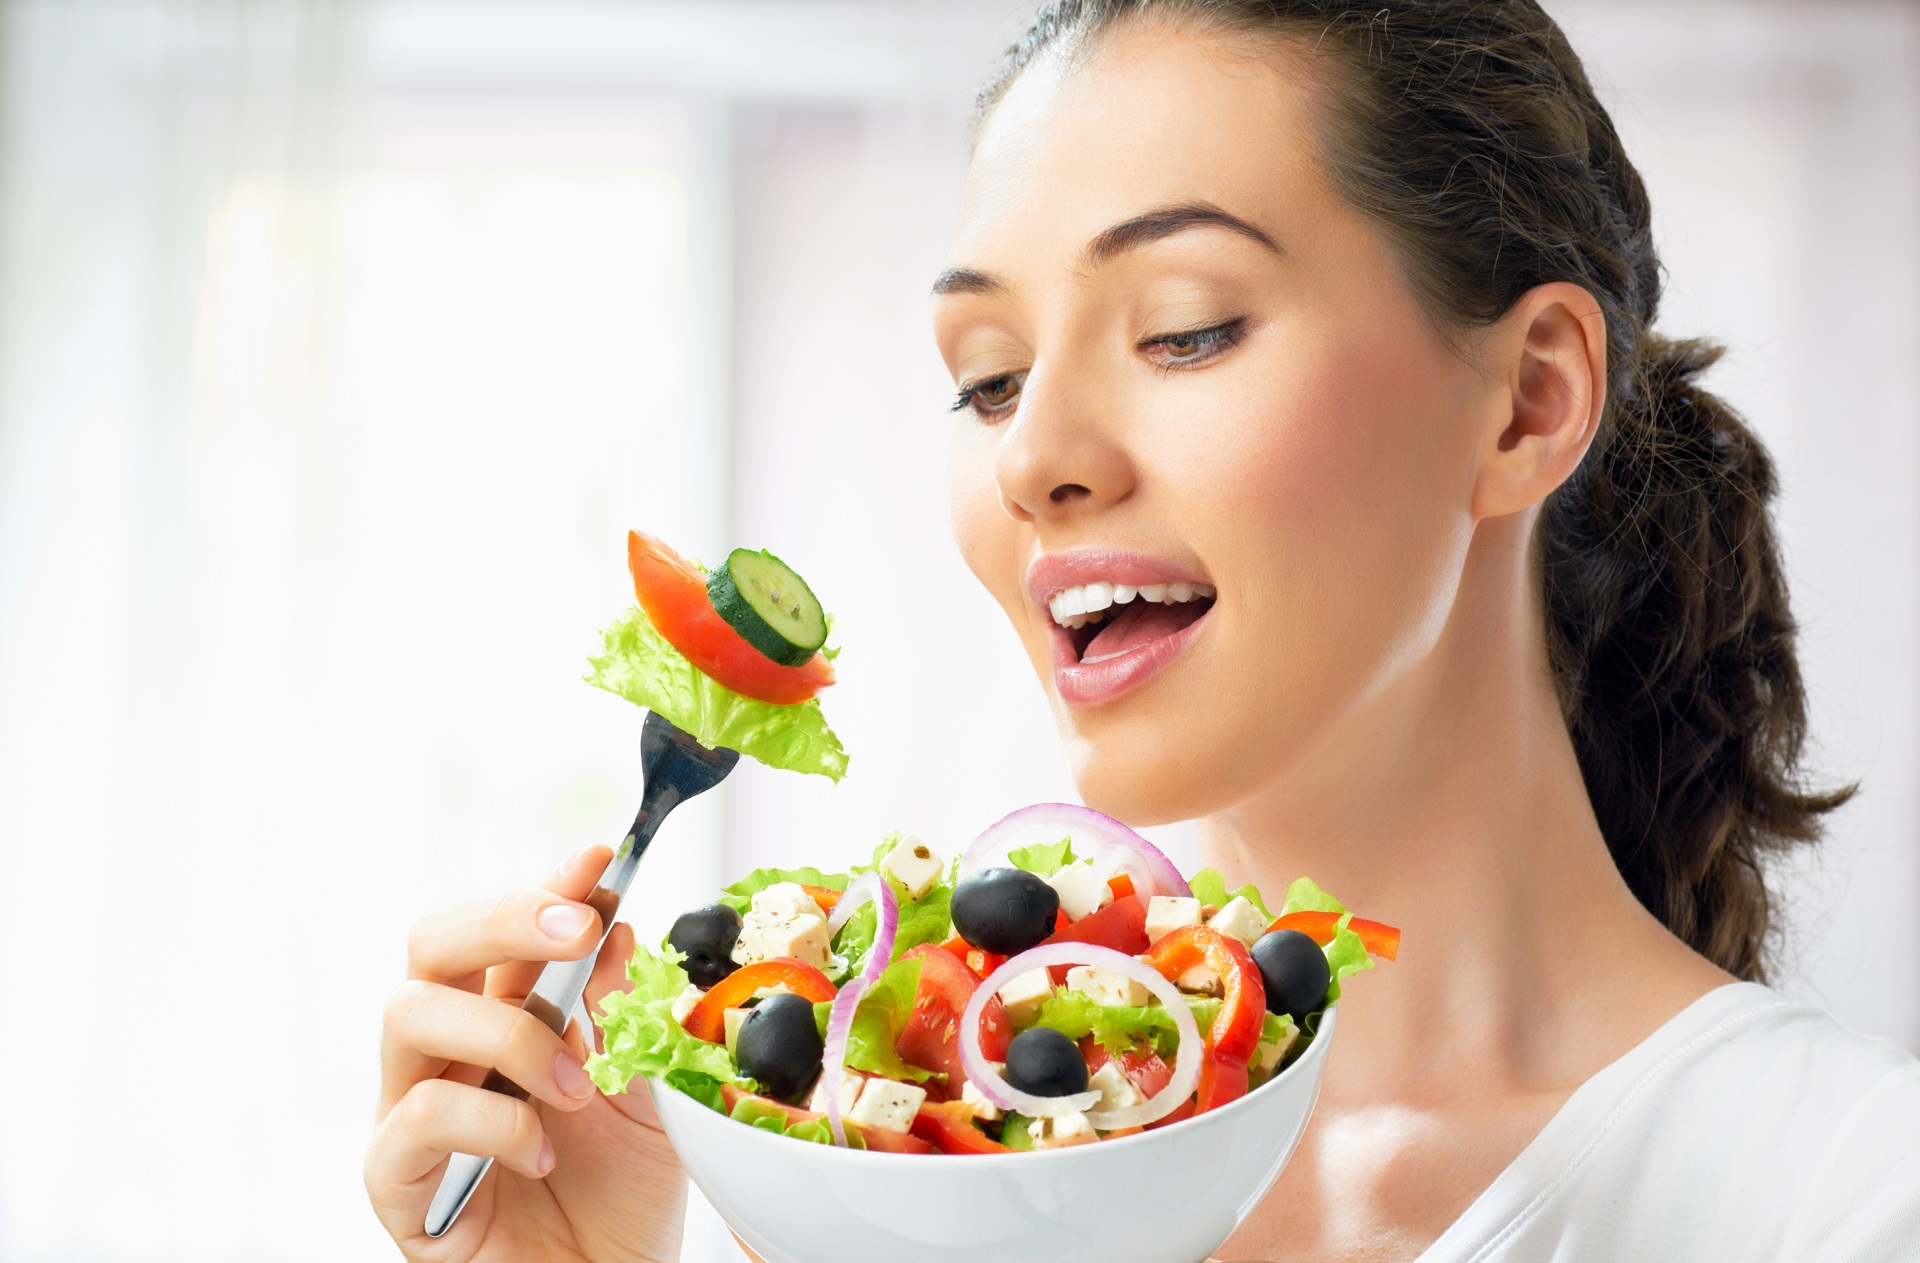 lifestyle-health-healthy-food-fruits-green-vegetable